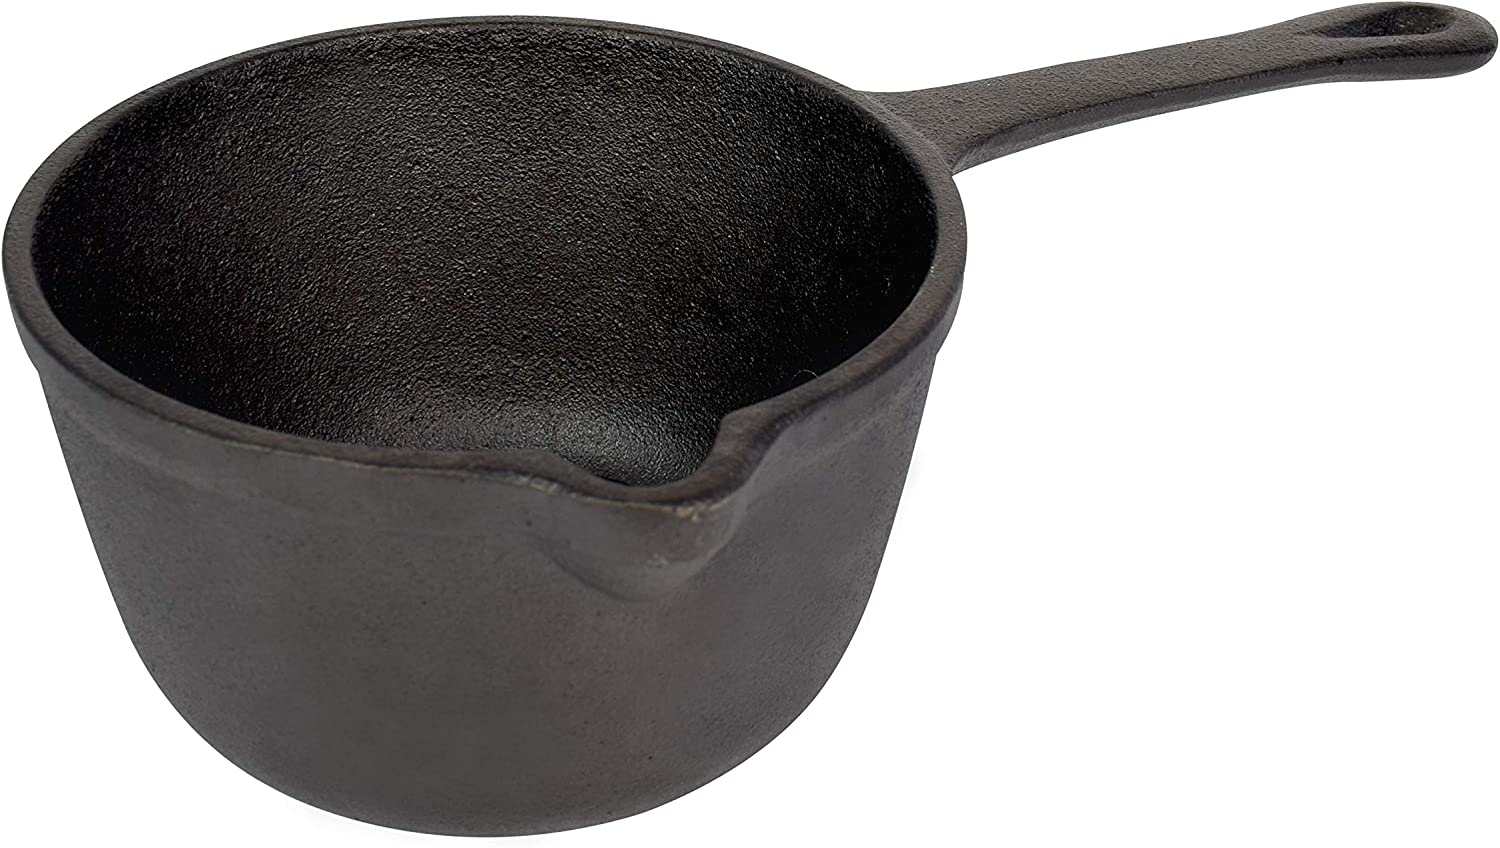 Jim Beam JB0204 Pre-Seasoned Heavy Duty Construction Cast Iron Basting Pot for Grilling and Oven, Large, Black